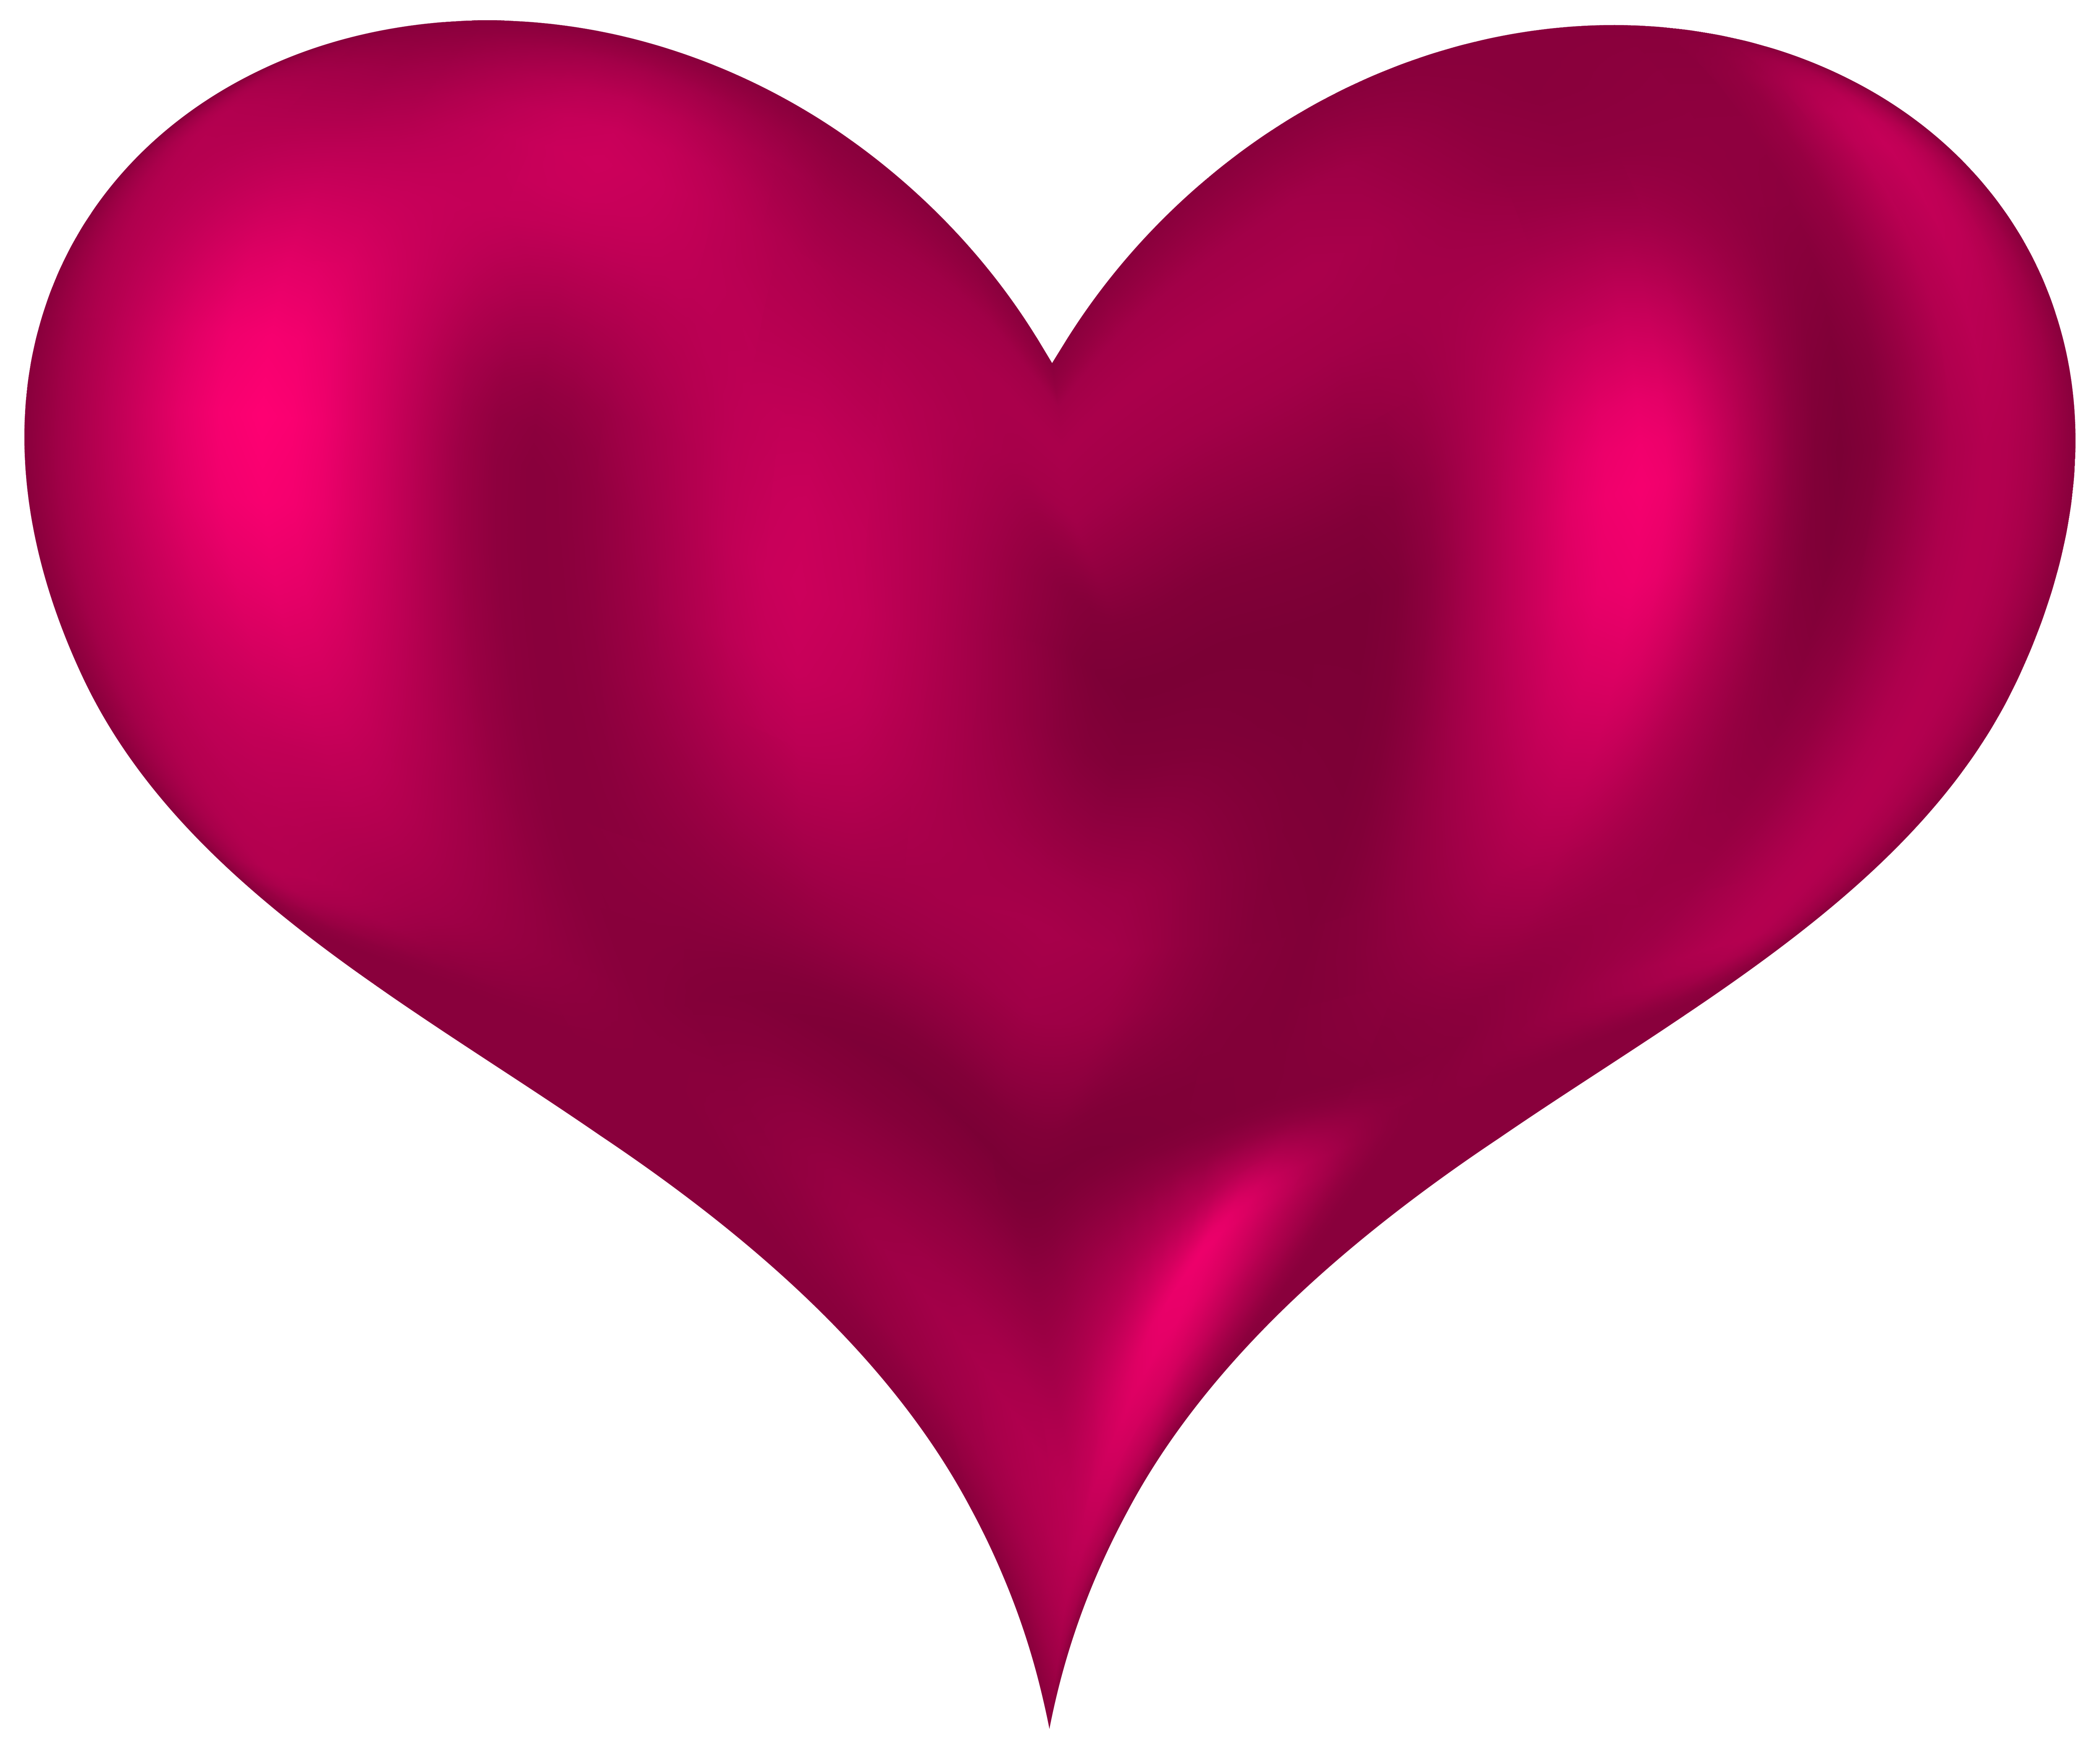 Pink heart clipart png. Beautiful best web